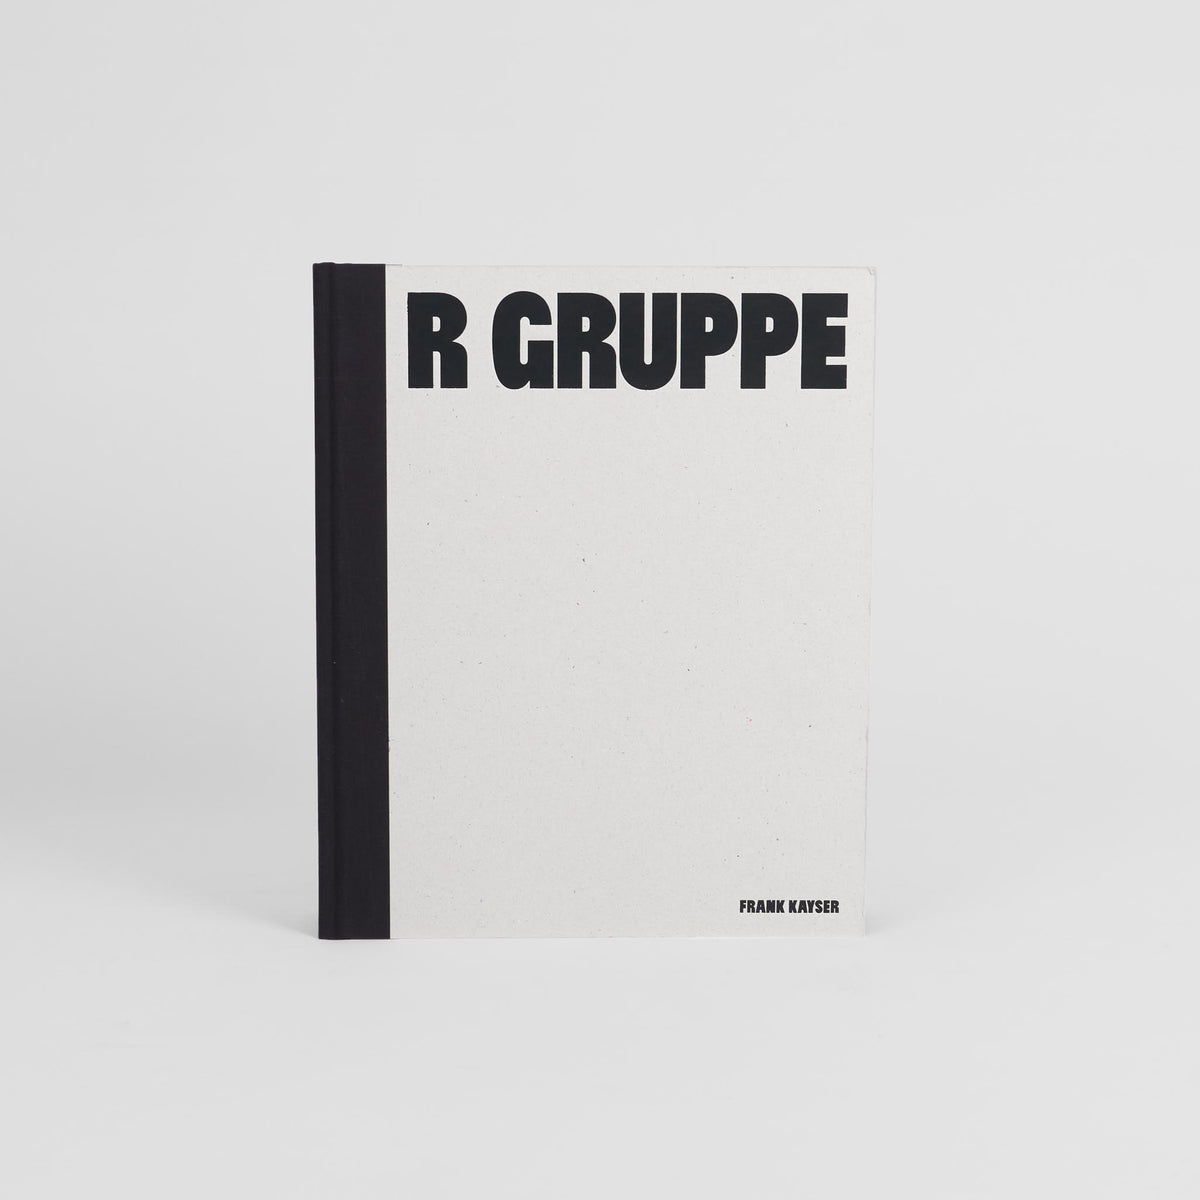 R Gruppe – The Book About America's Cult Porsche Car Club, Frank Kayser